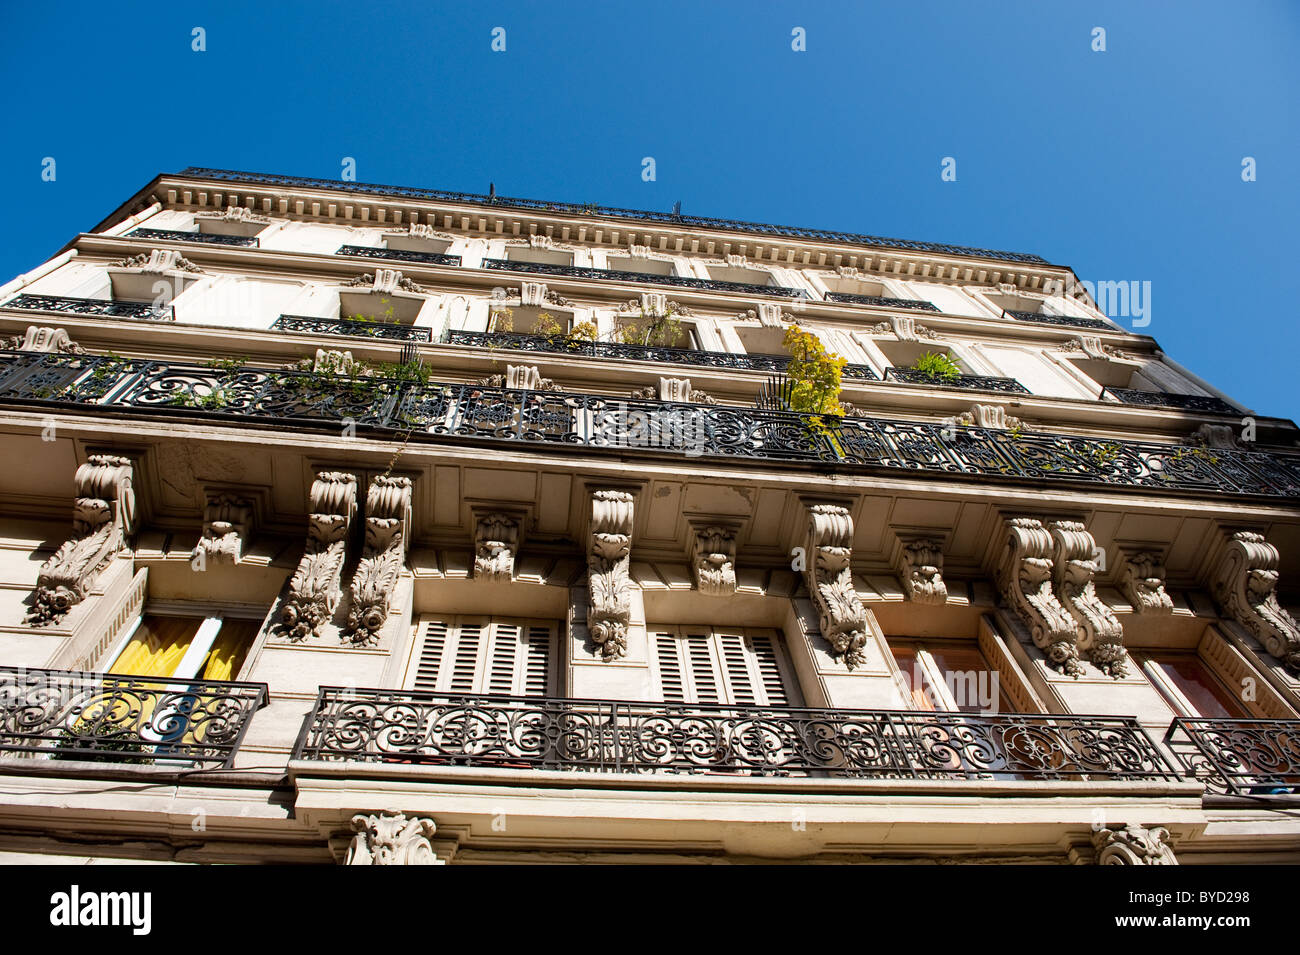 Typical houses in the 9th arrondissement in Paris - Stock Image